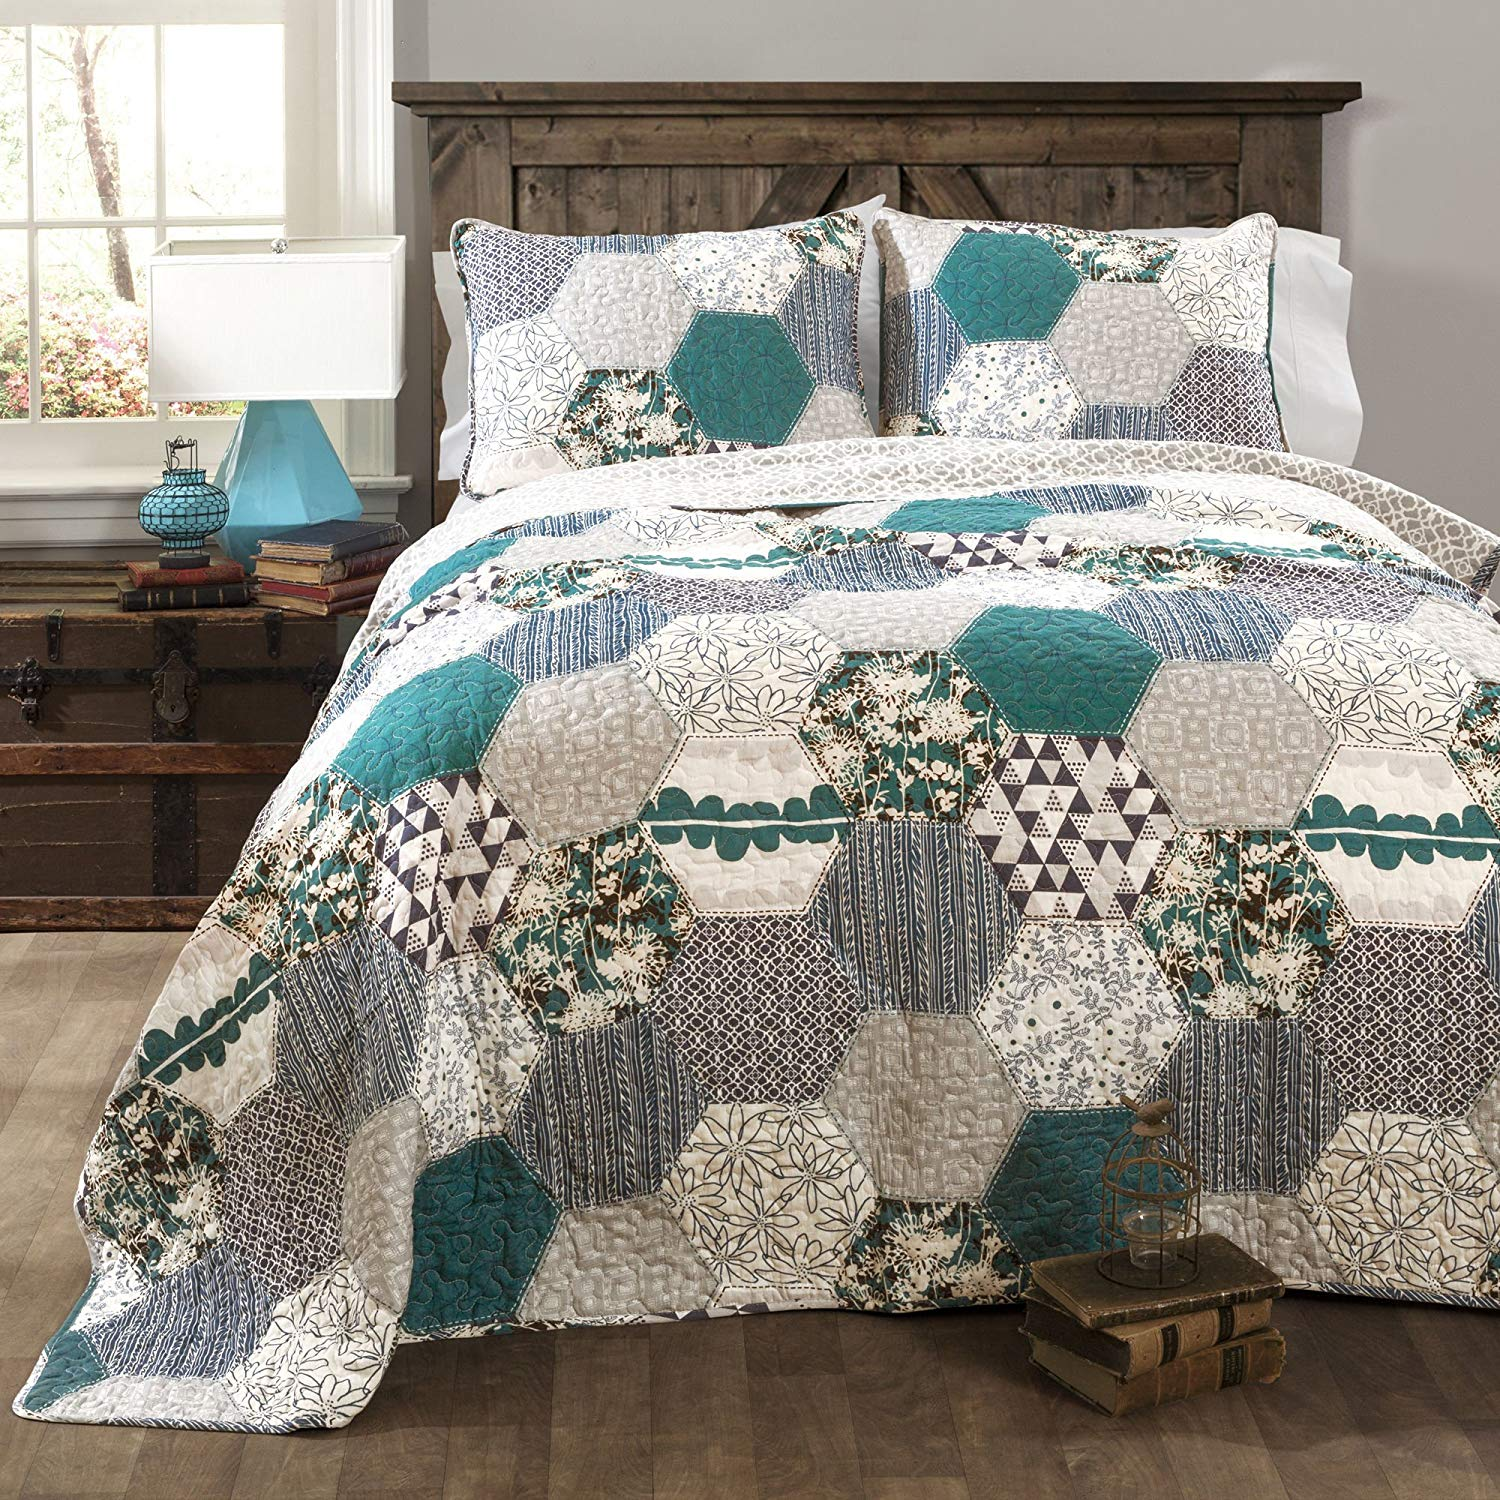 OSK 3 Piece Blue Floral Patchwork Full Queen Size Quilt, Teal Geometric Striped Flower Design, Gray White Octagon Shape Zig Zag Geometrical Grey Stripes, Cotton